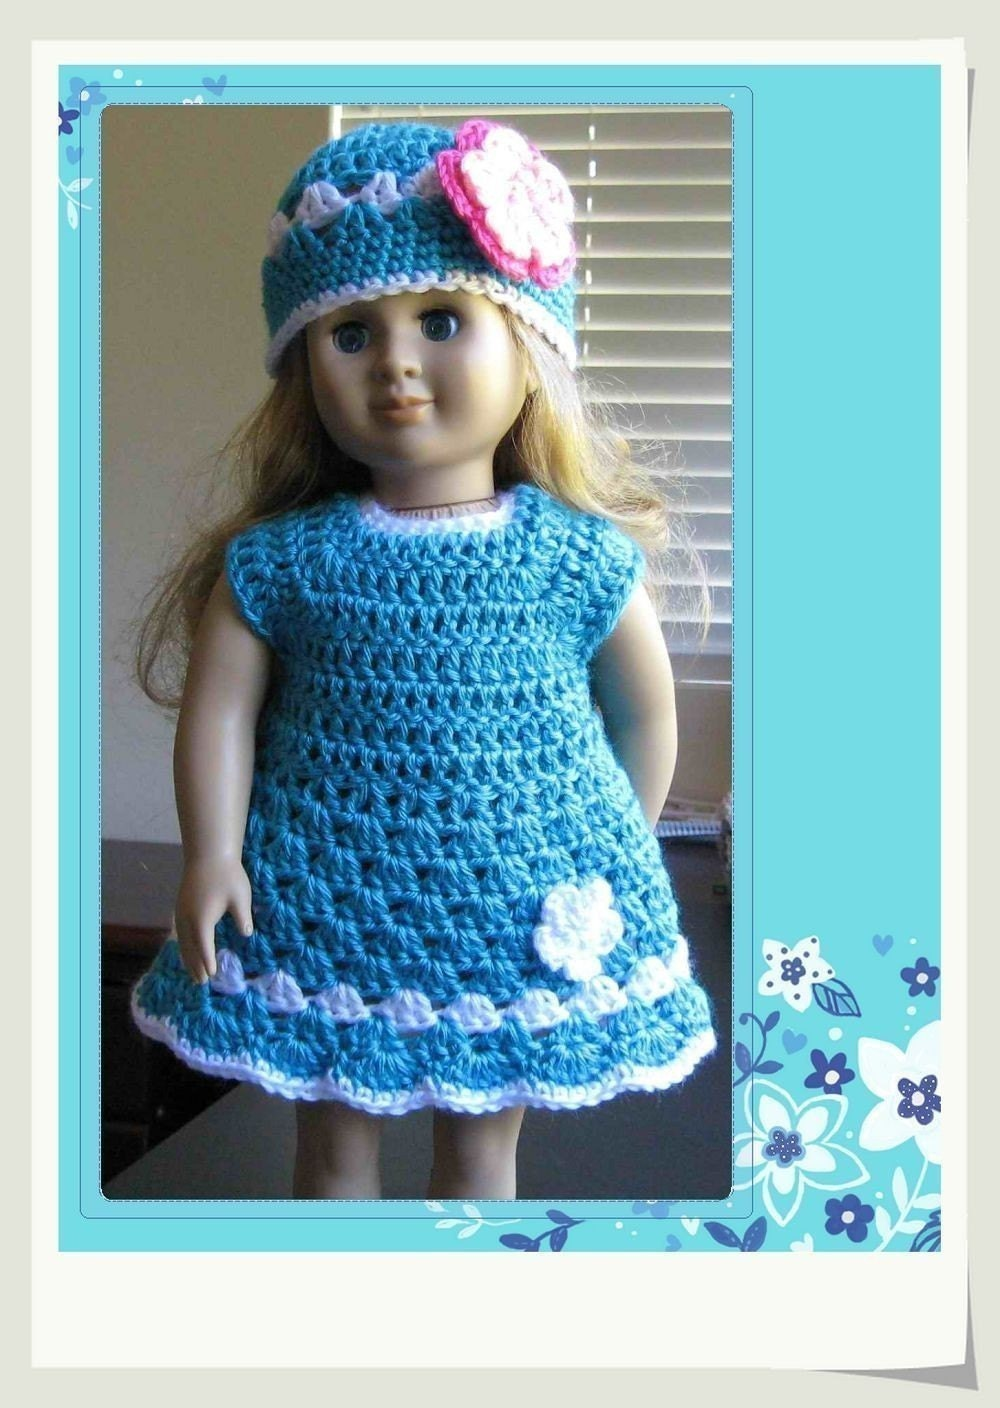 Crocheting Doll Clothes : CROCHETING DOLL CLOTHES Crochet For Beginners